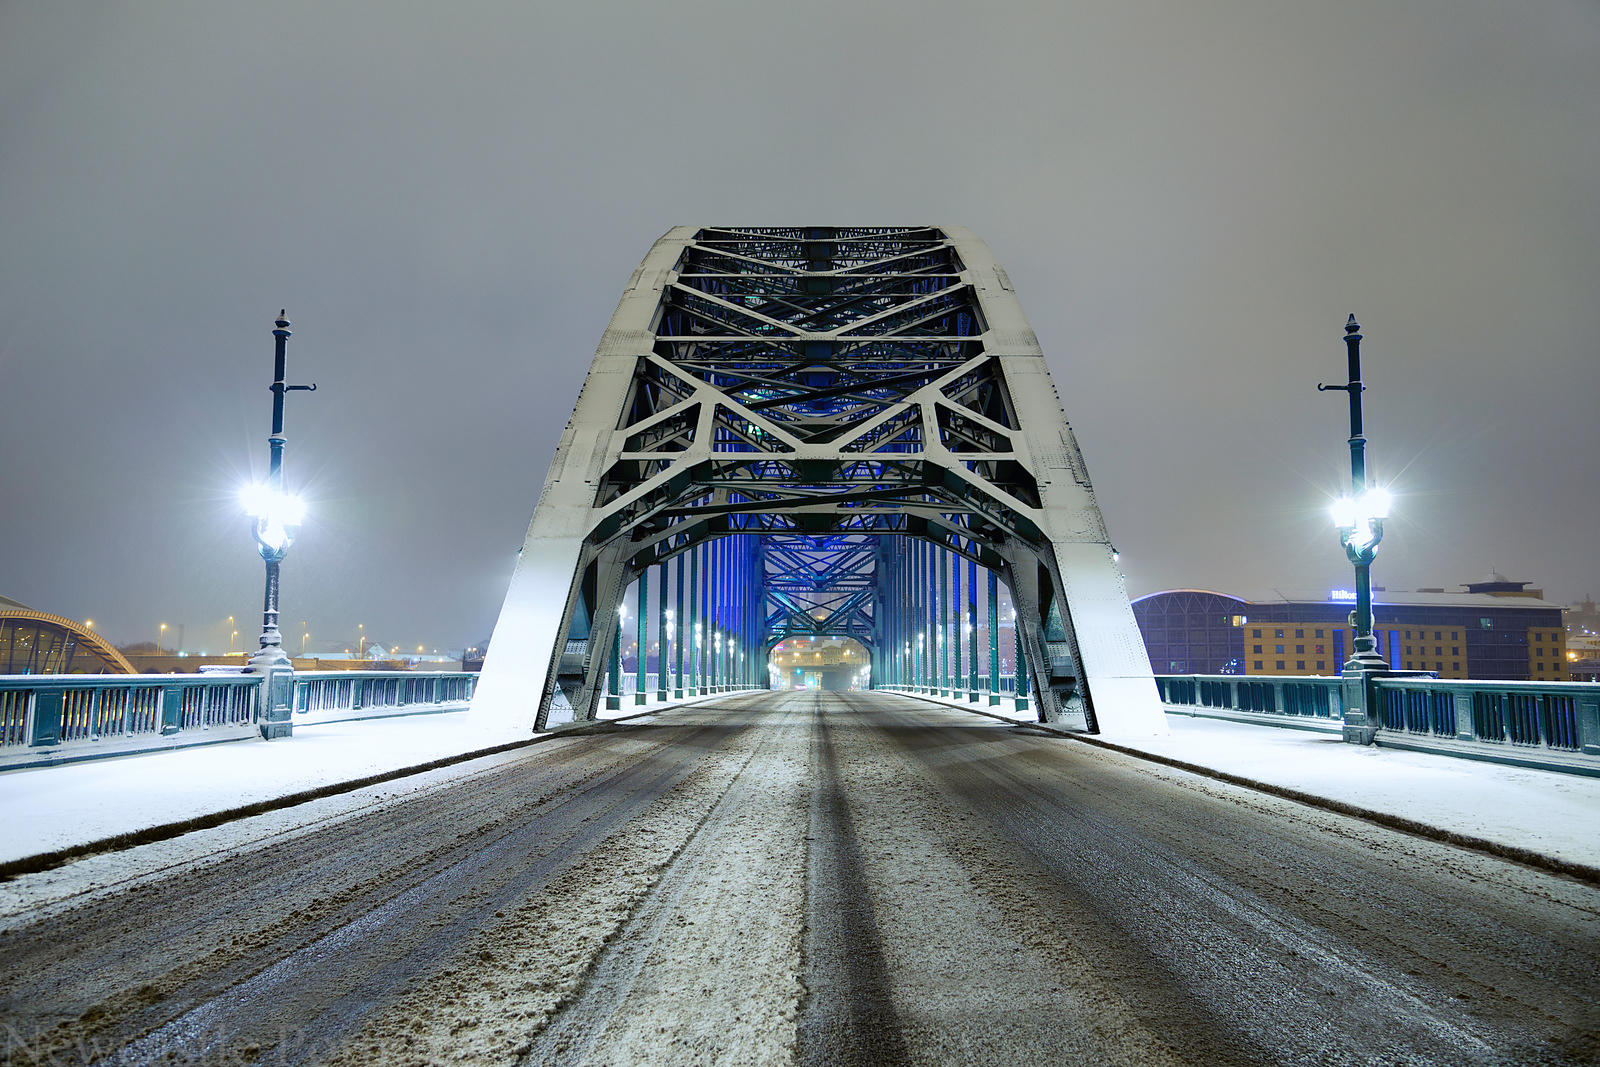 Snow on the Tyne Bridge